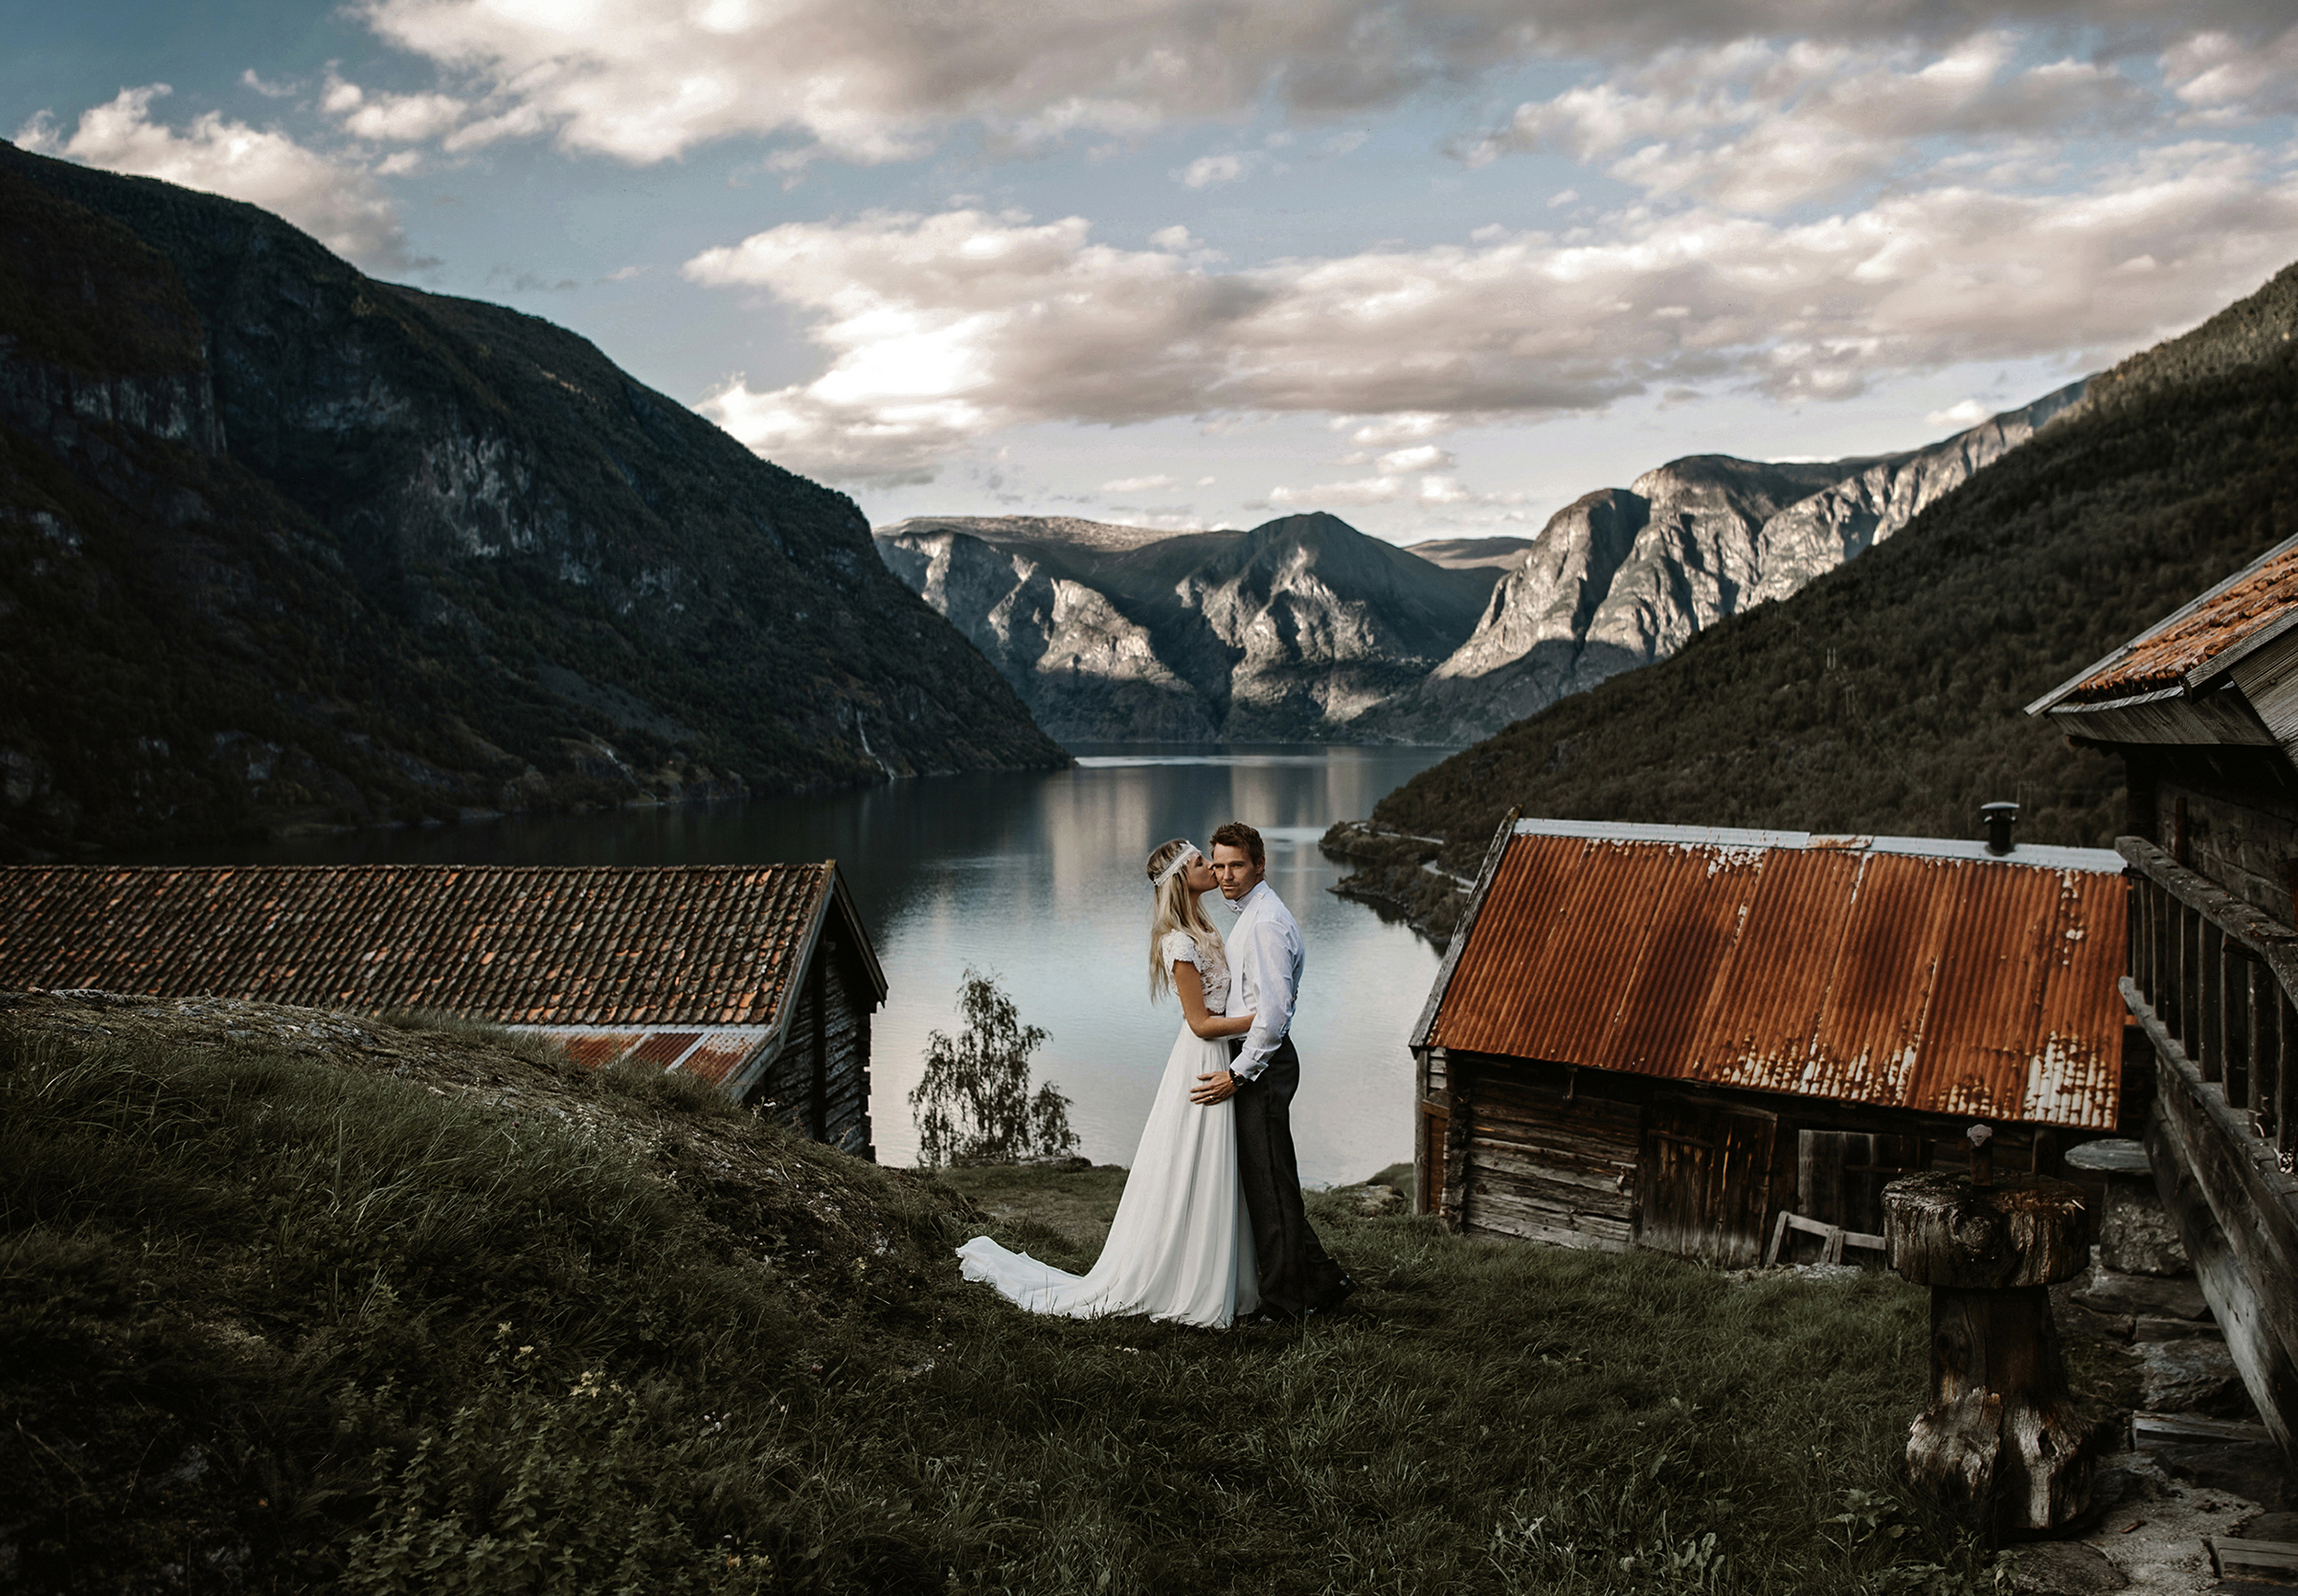 Couple overlooking fjord in Aurland, Norway - photo by Froydis Geithus